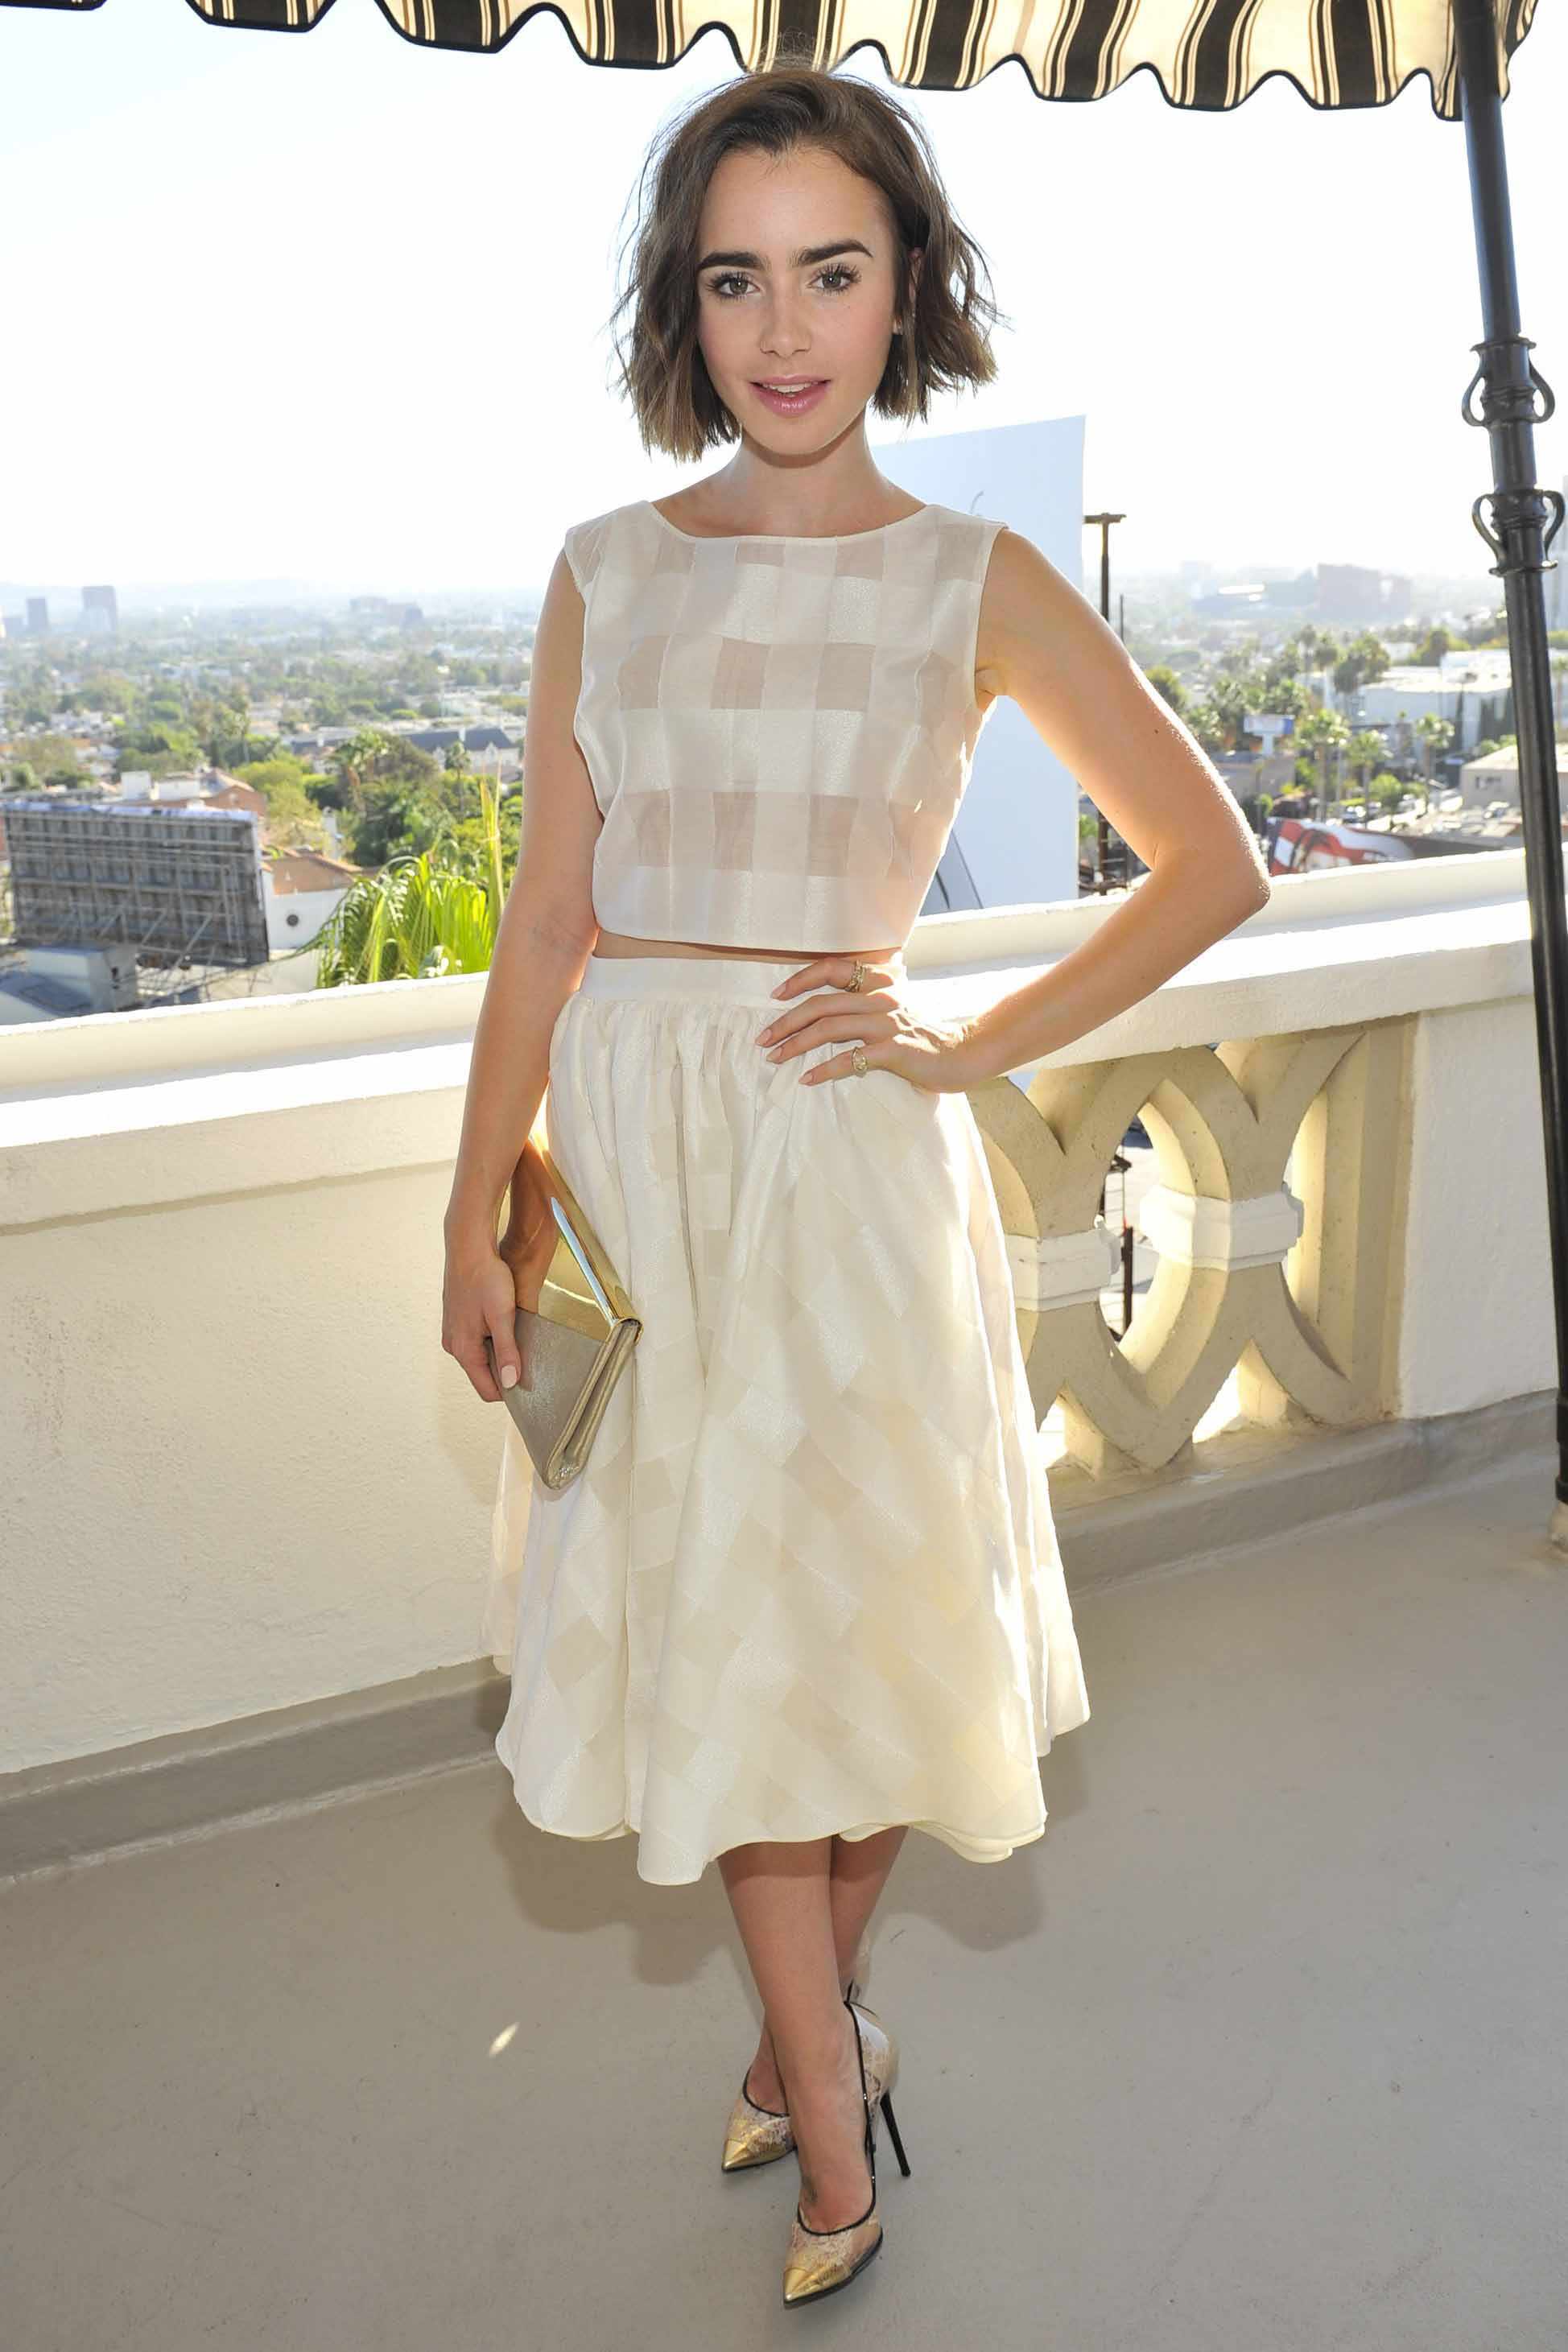 Lily collins cute pictures